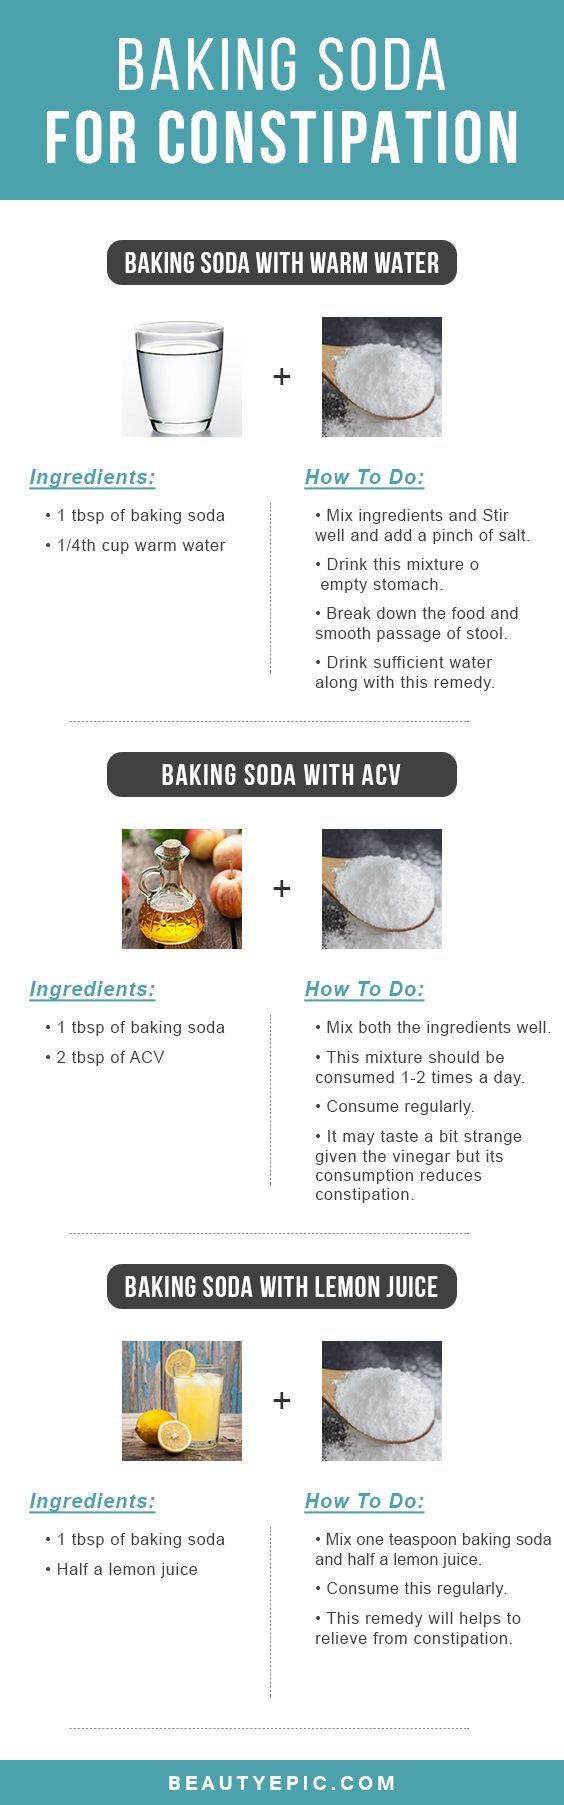 Baking Soda for Constipation: Try These 4 Effective Home Remedies